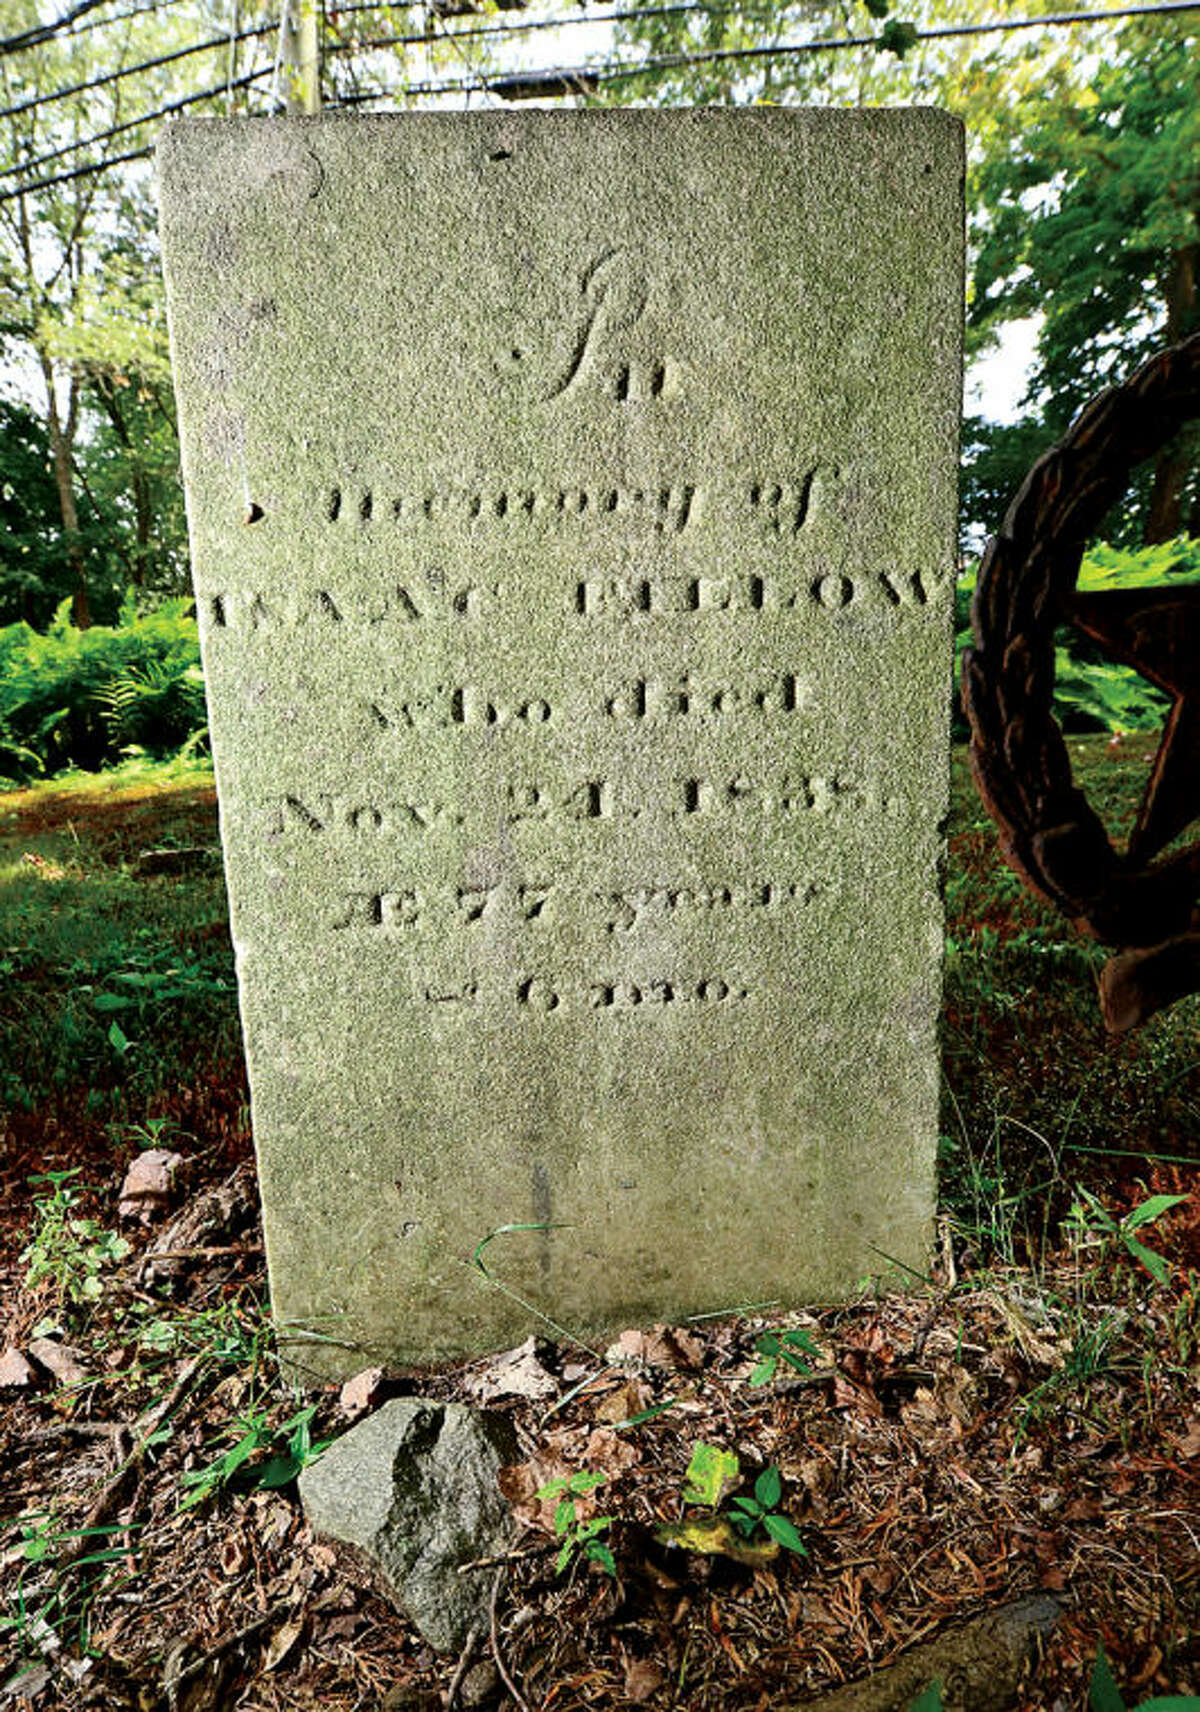 Ed Eckert can trace his lineage back to Richard Olmstead who help found Norwalk back in 1651. He is descended from Isaac Fillow who fought in the Revolutionary war in Norwalk and Fairfield and is buried in Westport. Hour photo / Erik Trautmann